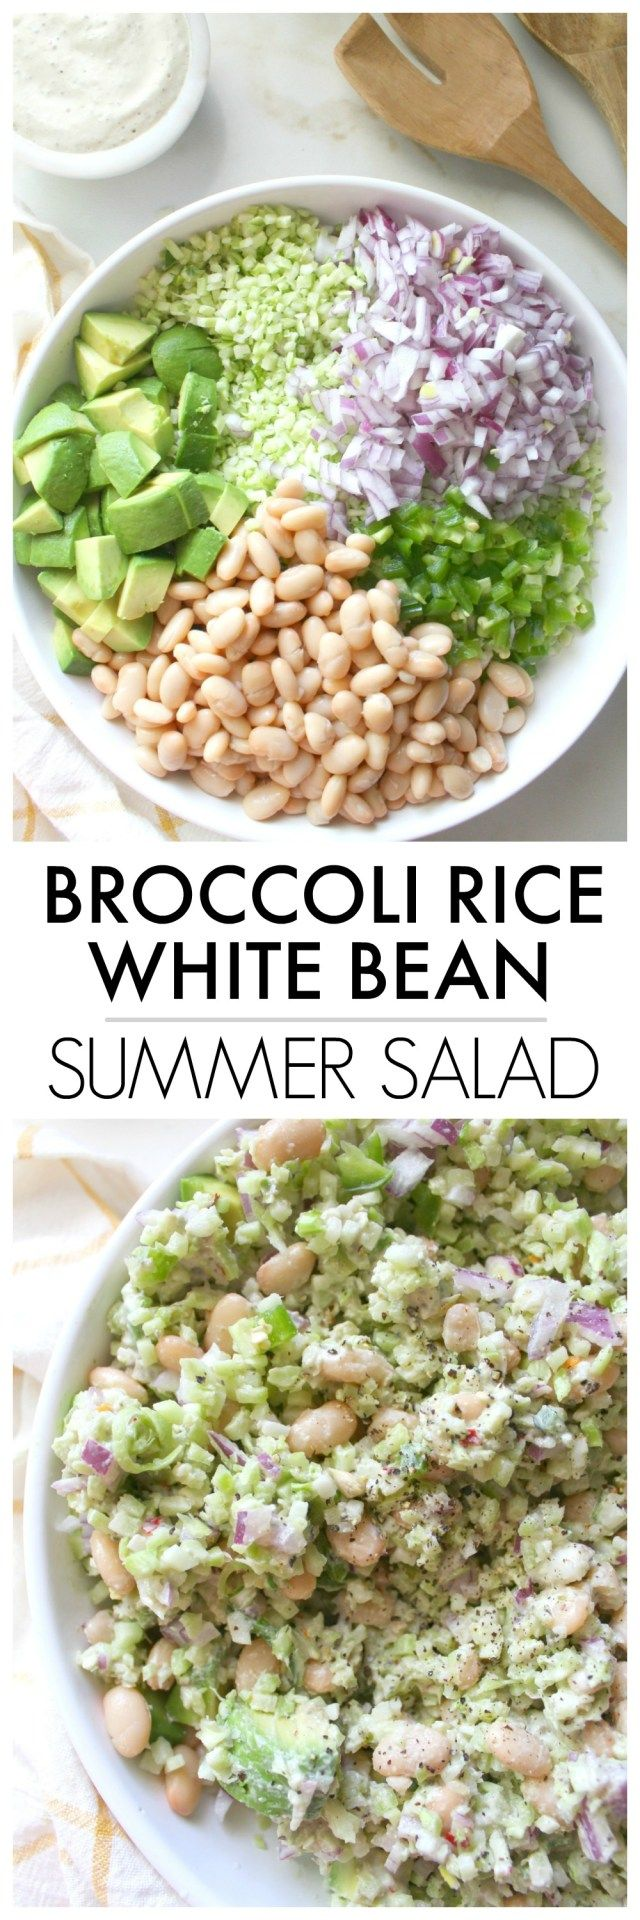 Broccoli Rice White Bean Summer Salad